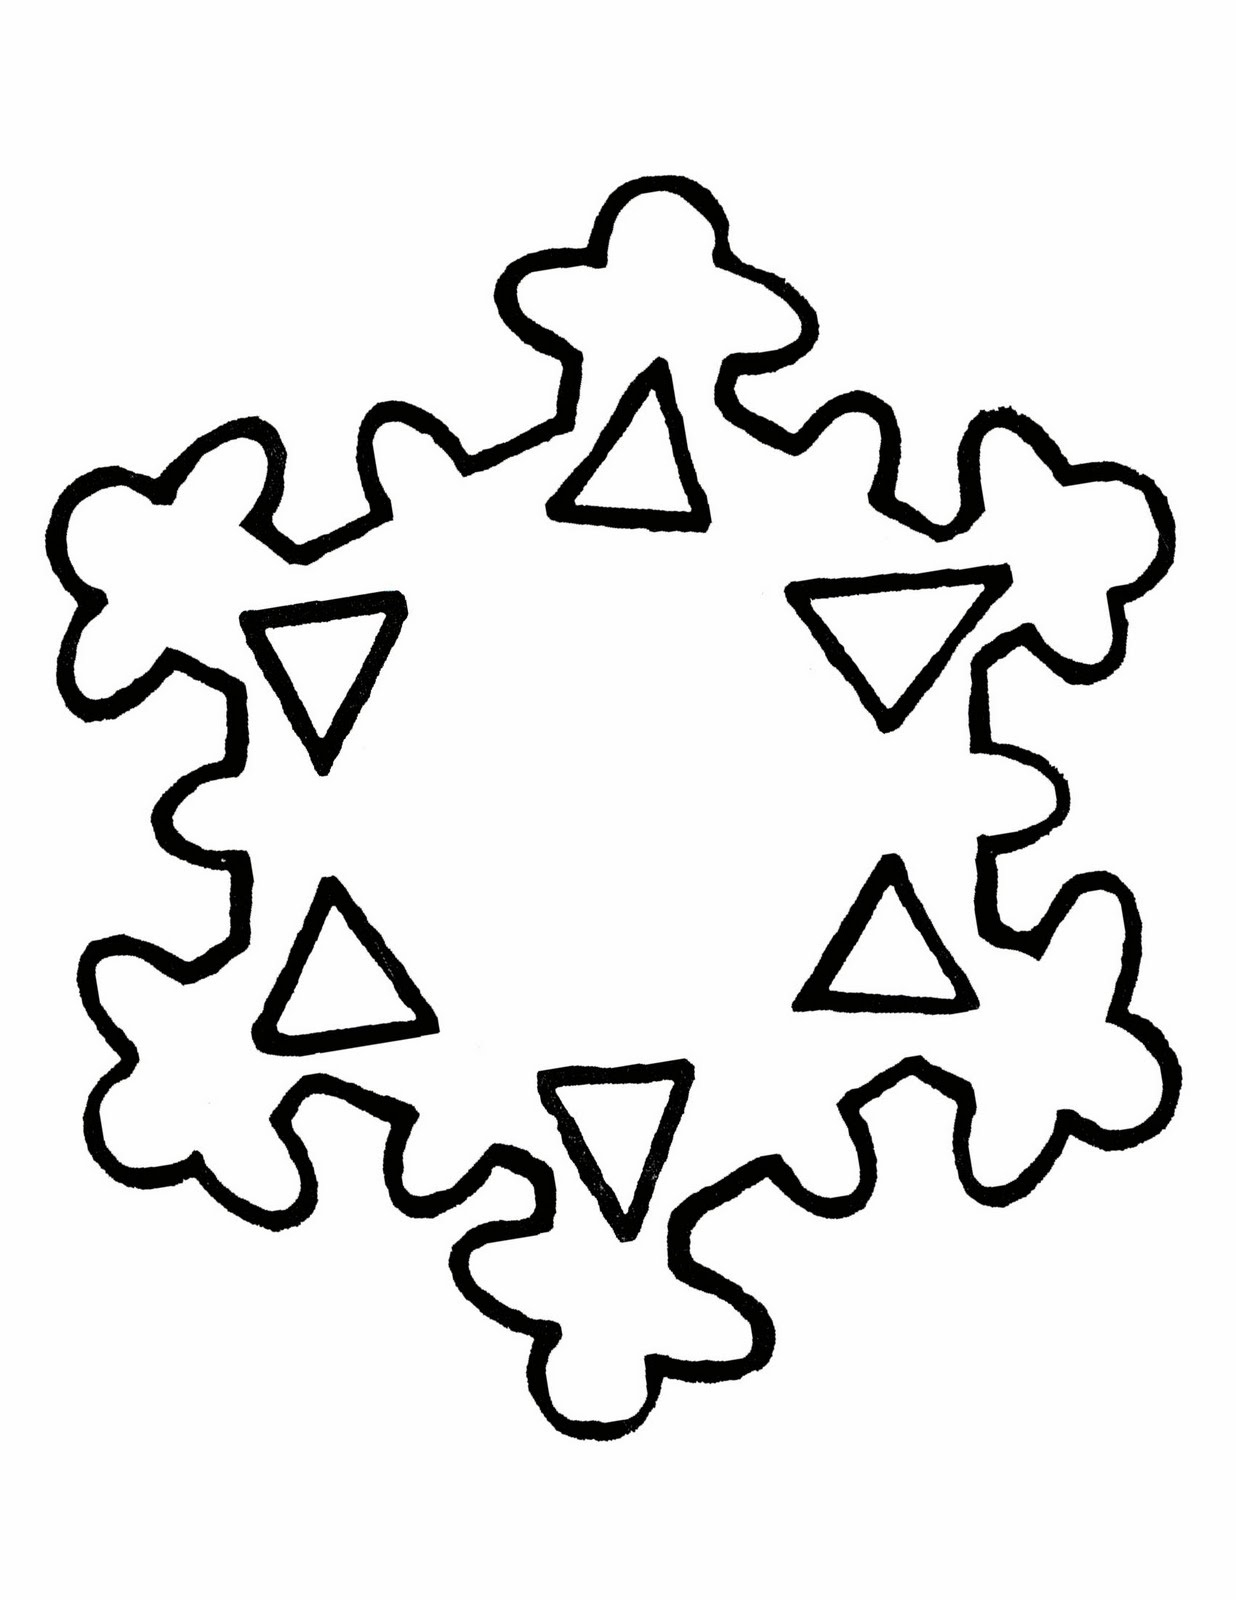 Free Cliparts Snowflake Patterns, Download Free Clip Art, Free Clip - Snowflake Template Free Printable